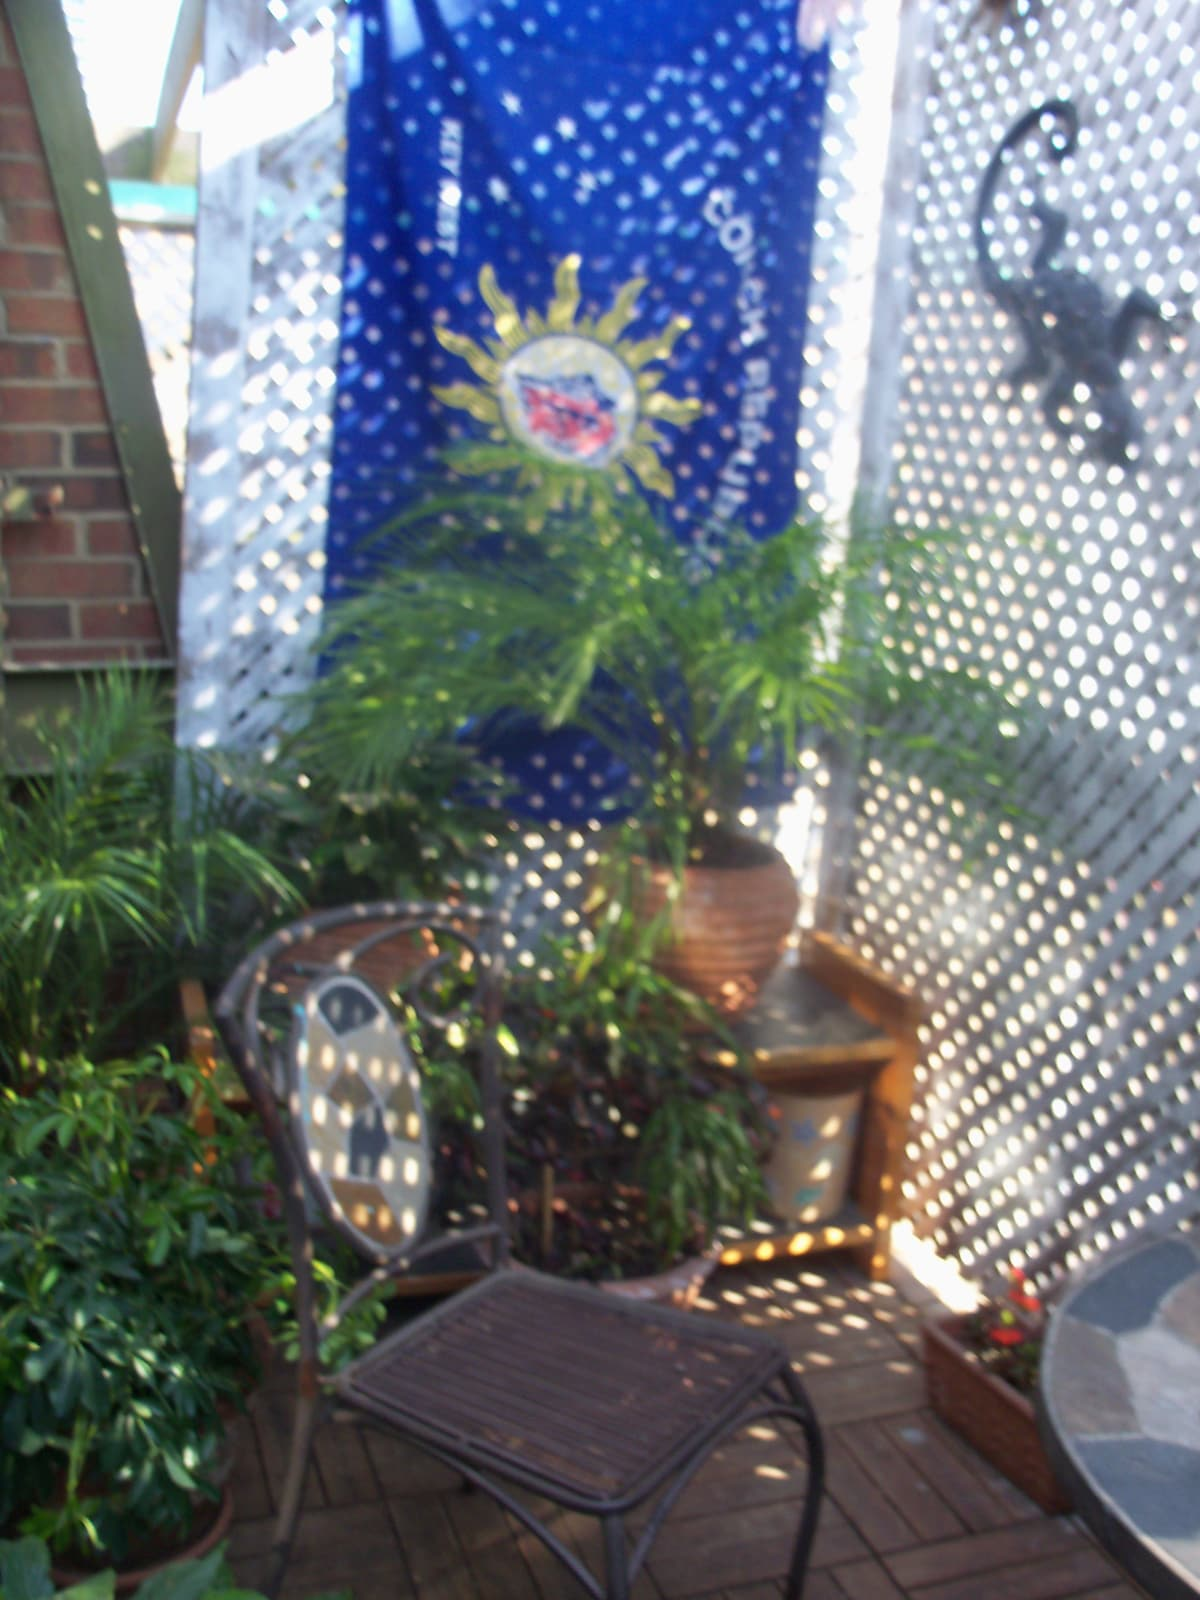 The balcony/garden patio.  A great spot for a coffee, lunch, some rest, reading.....so peaceful.